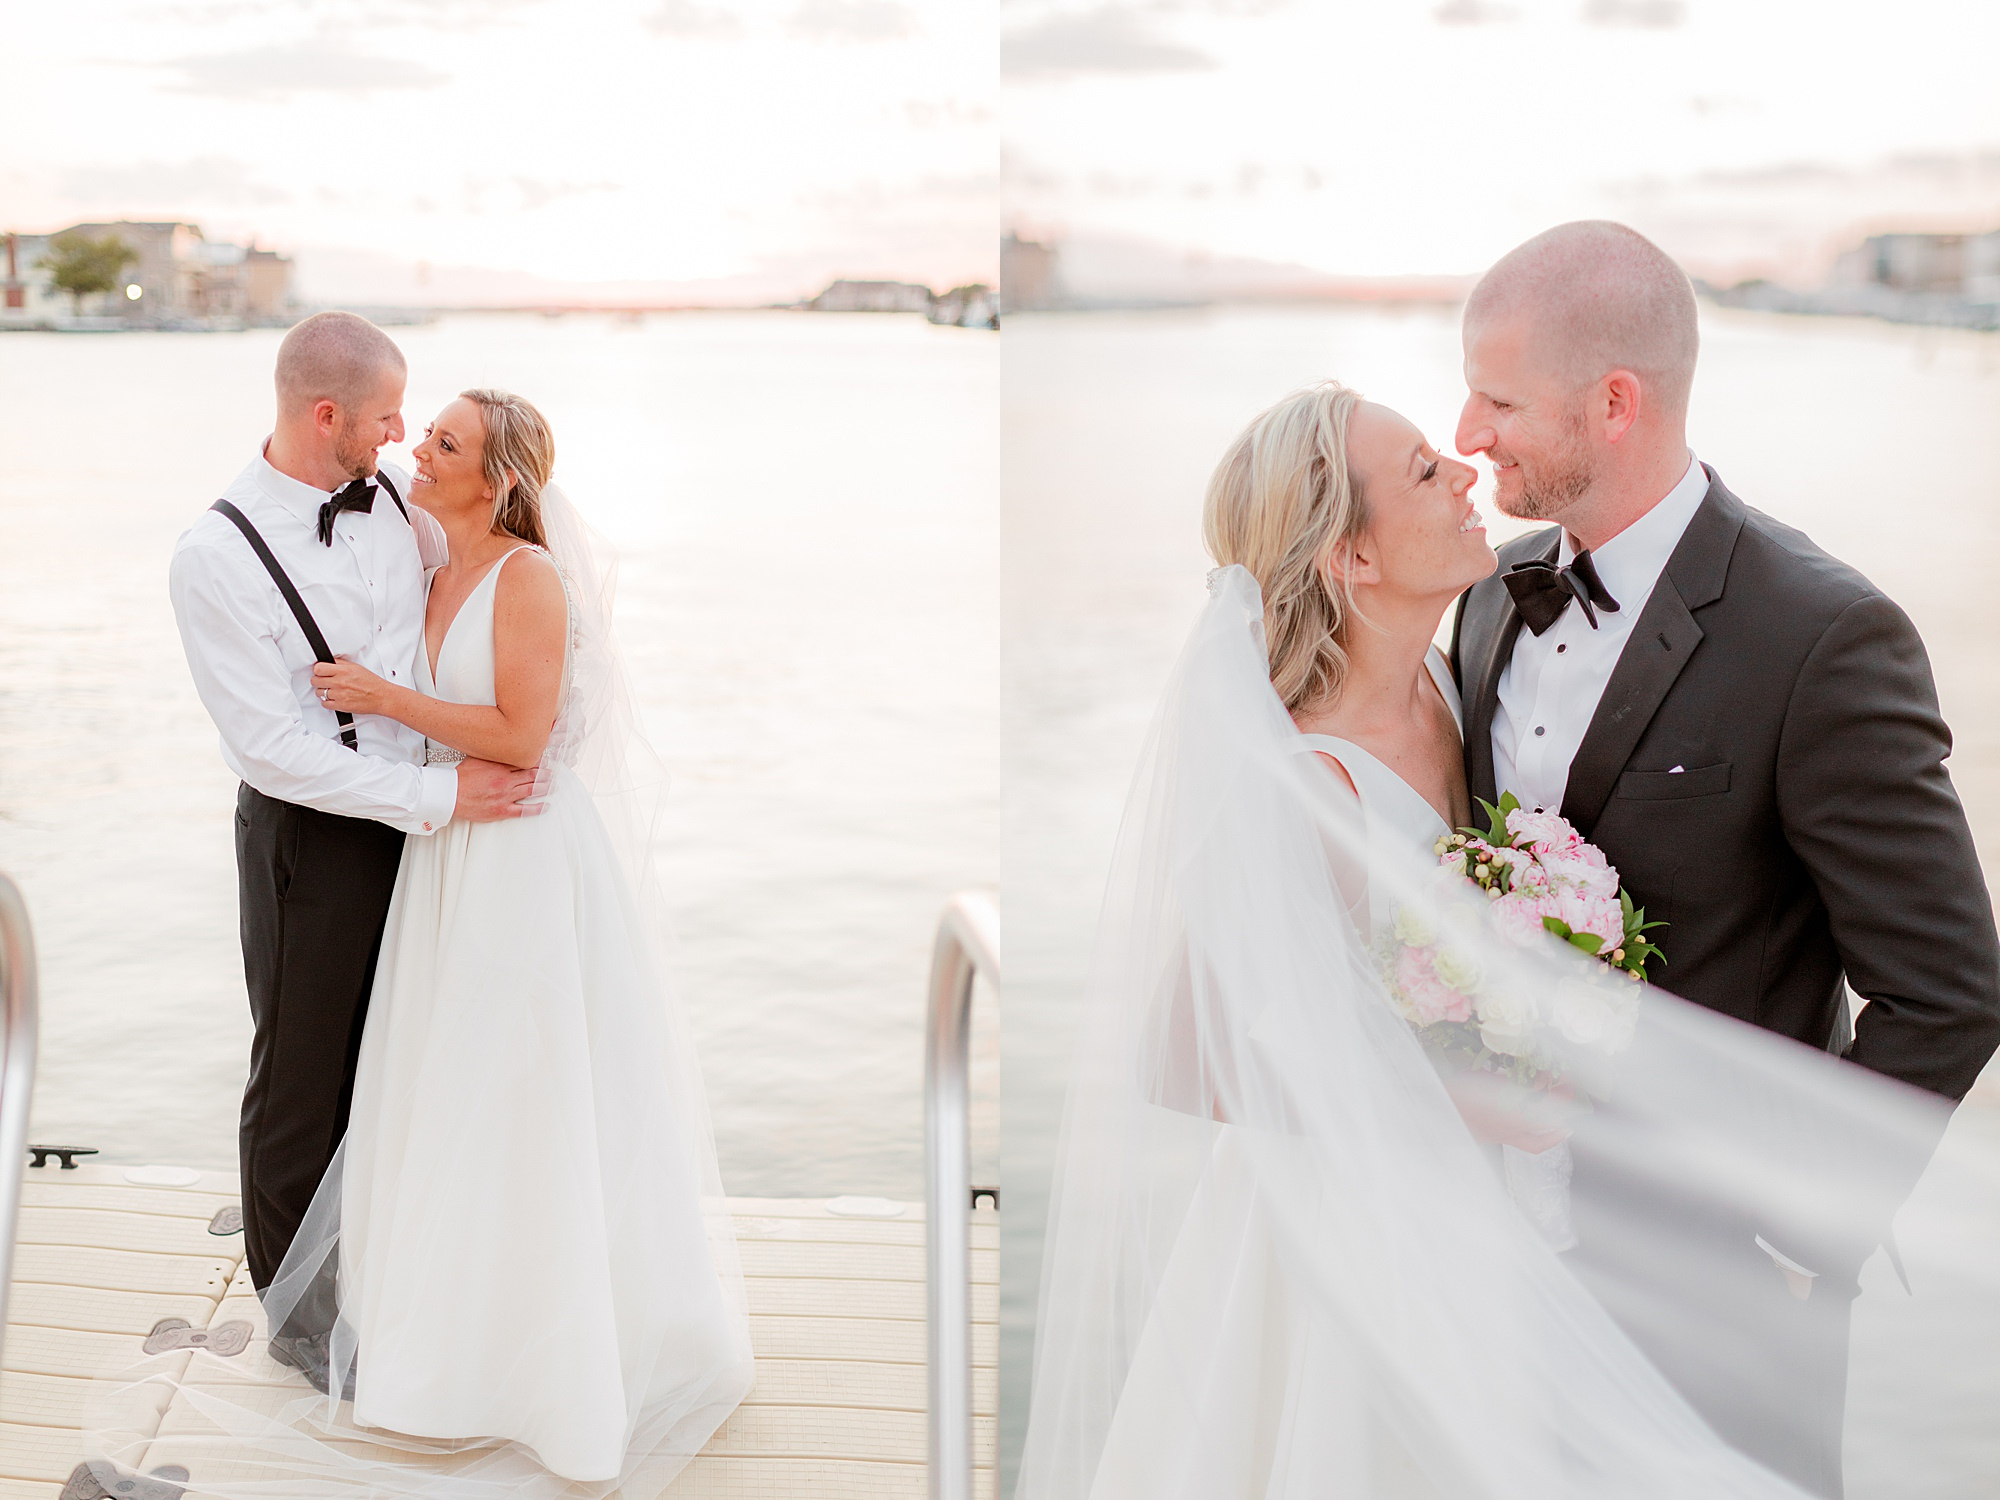 Natural and Vibrant Wedding Photography at the Reeds in Stone Harbor NJ by Magdalena Studios 0062